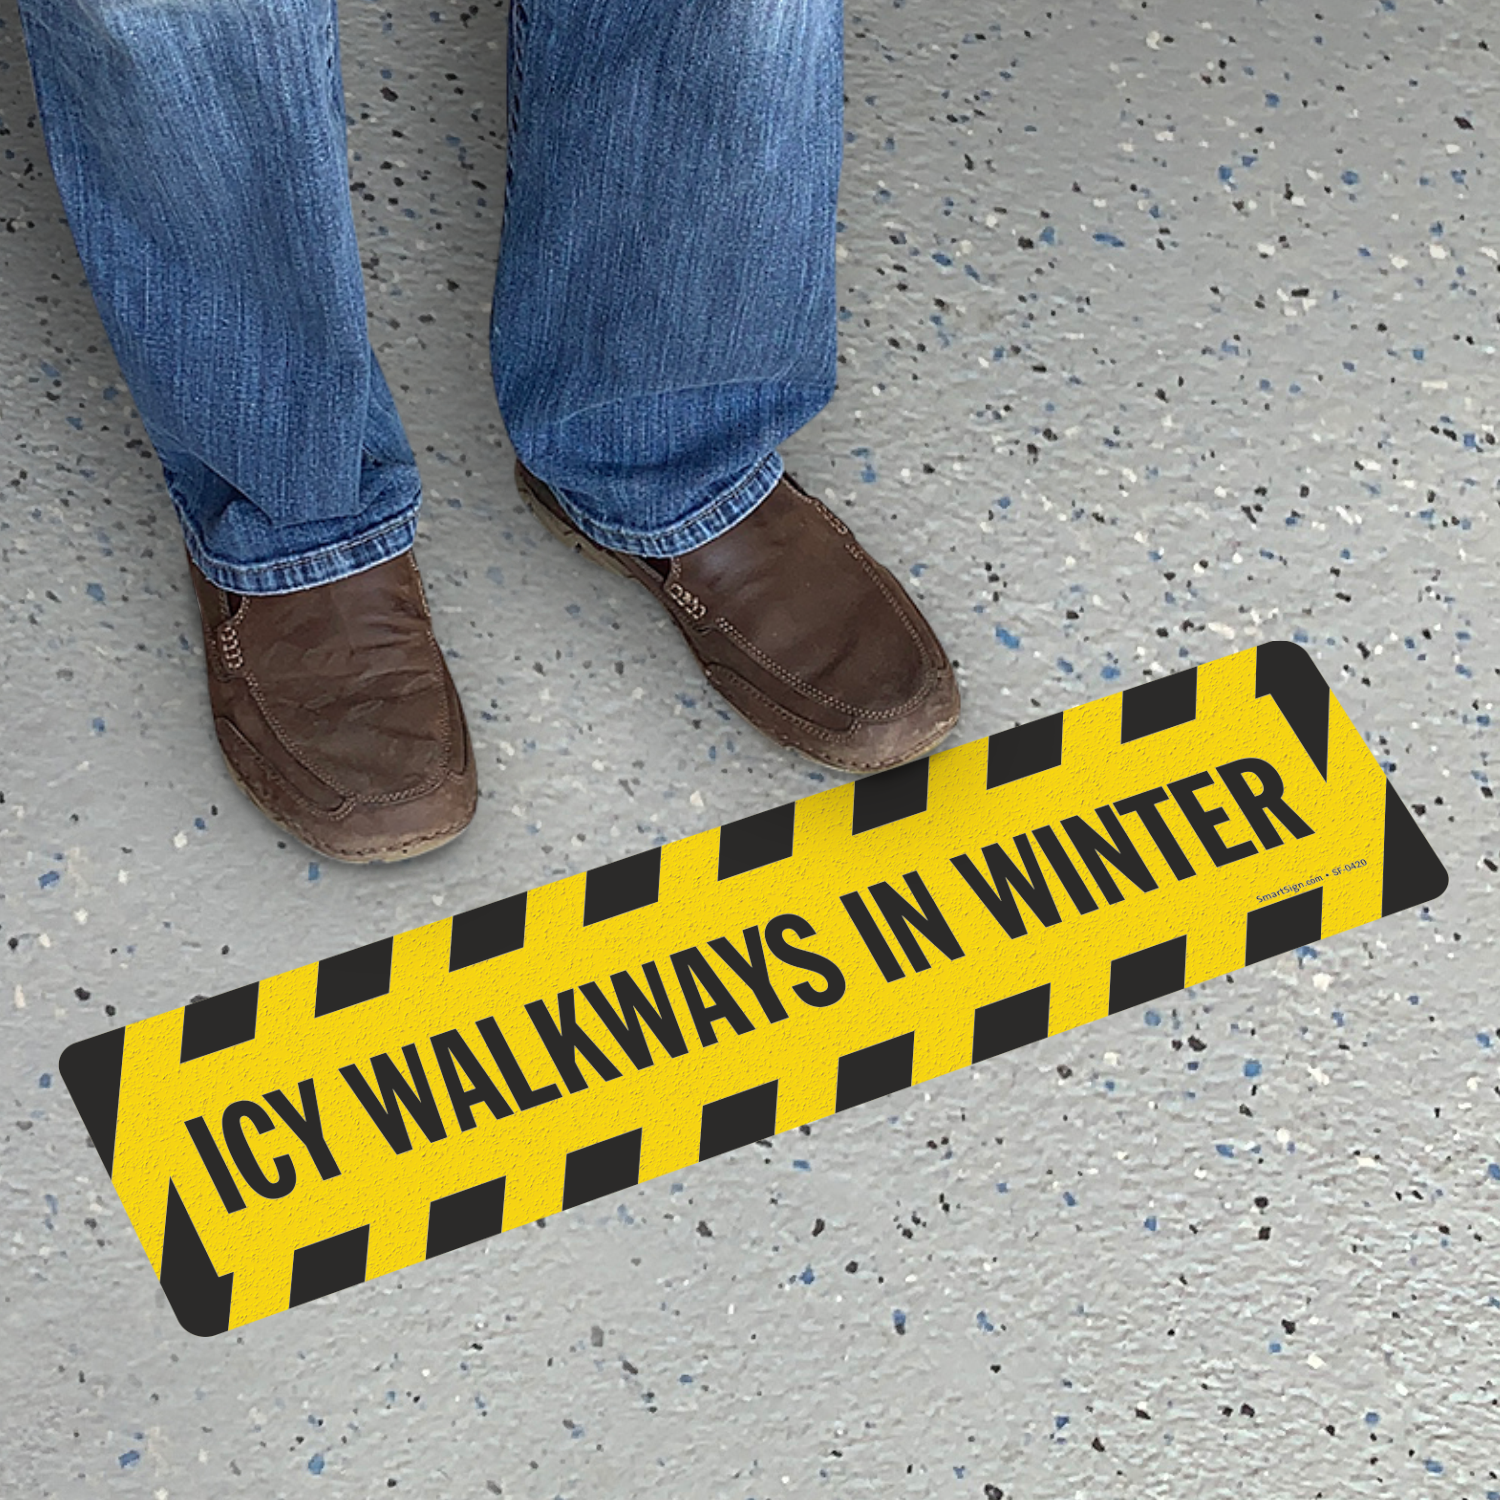 Icy Walkways In Winter Floor Sign